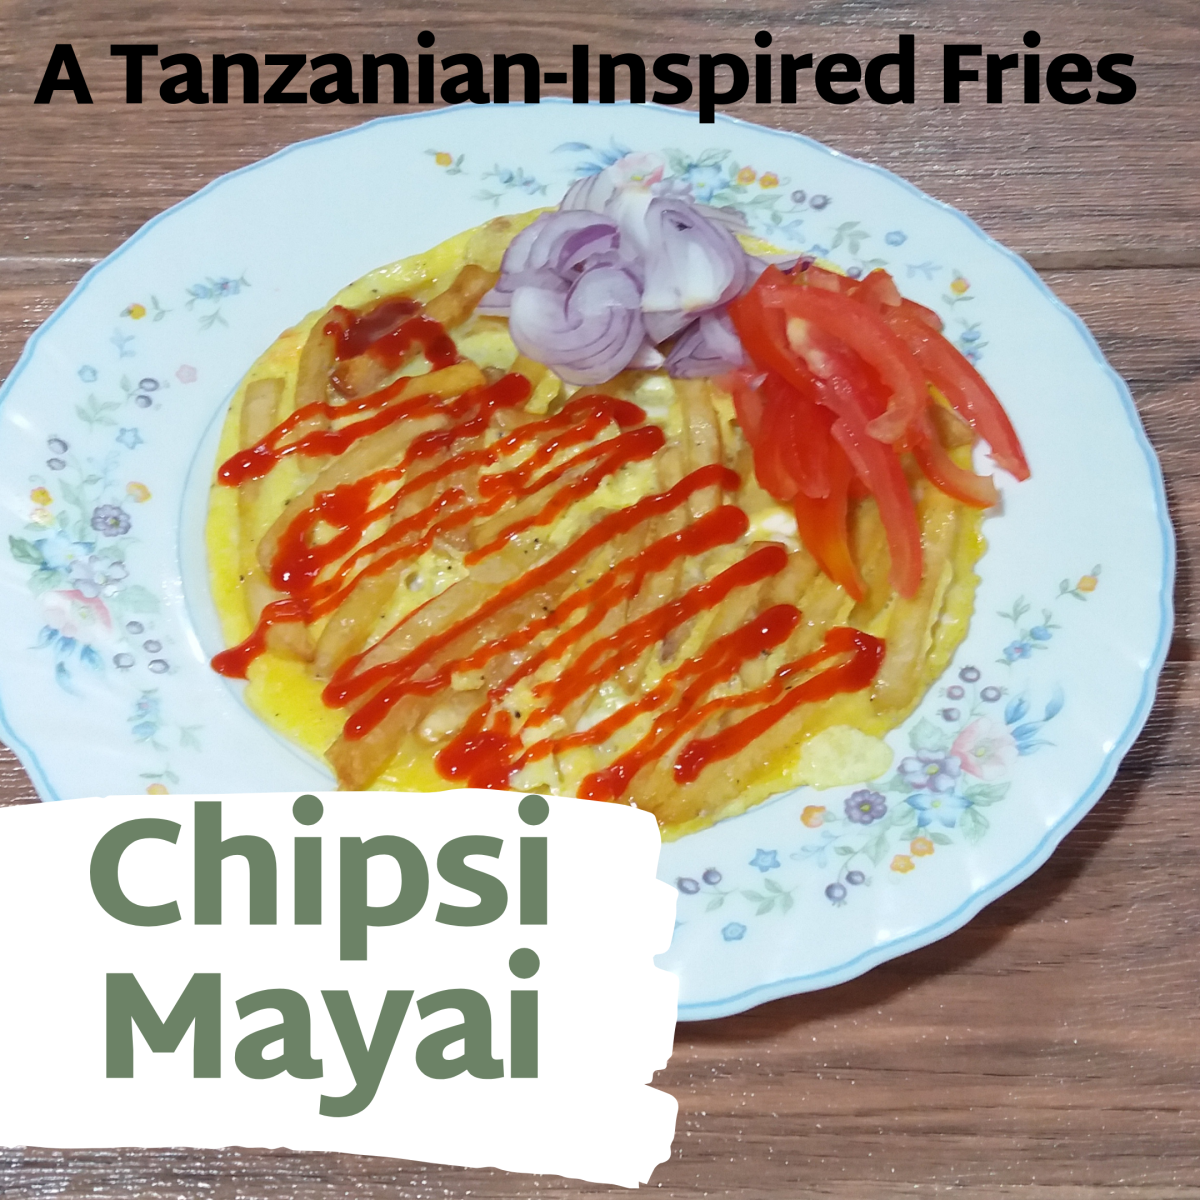 How to Cook Chipsi Mayai (Fries Omelet): A Tanzania-Inspired Dish